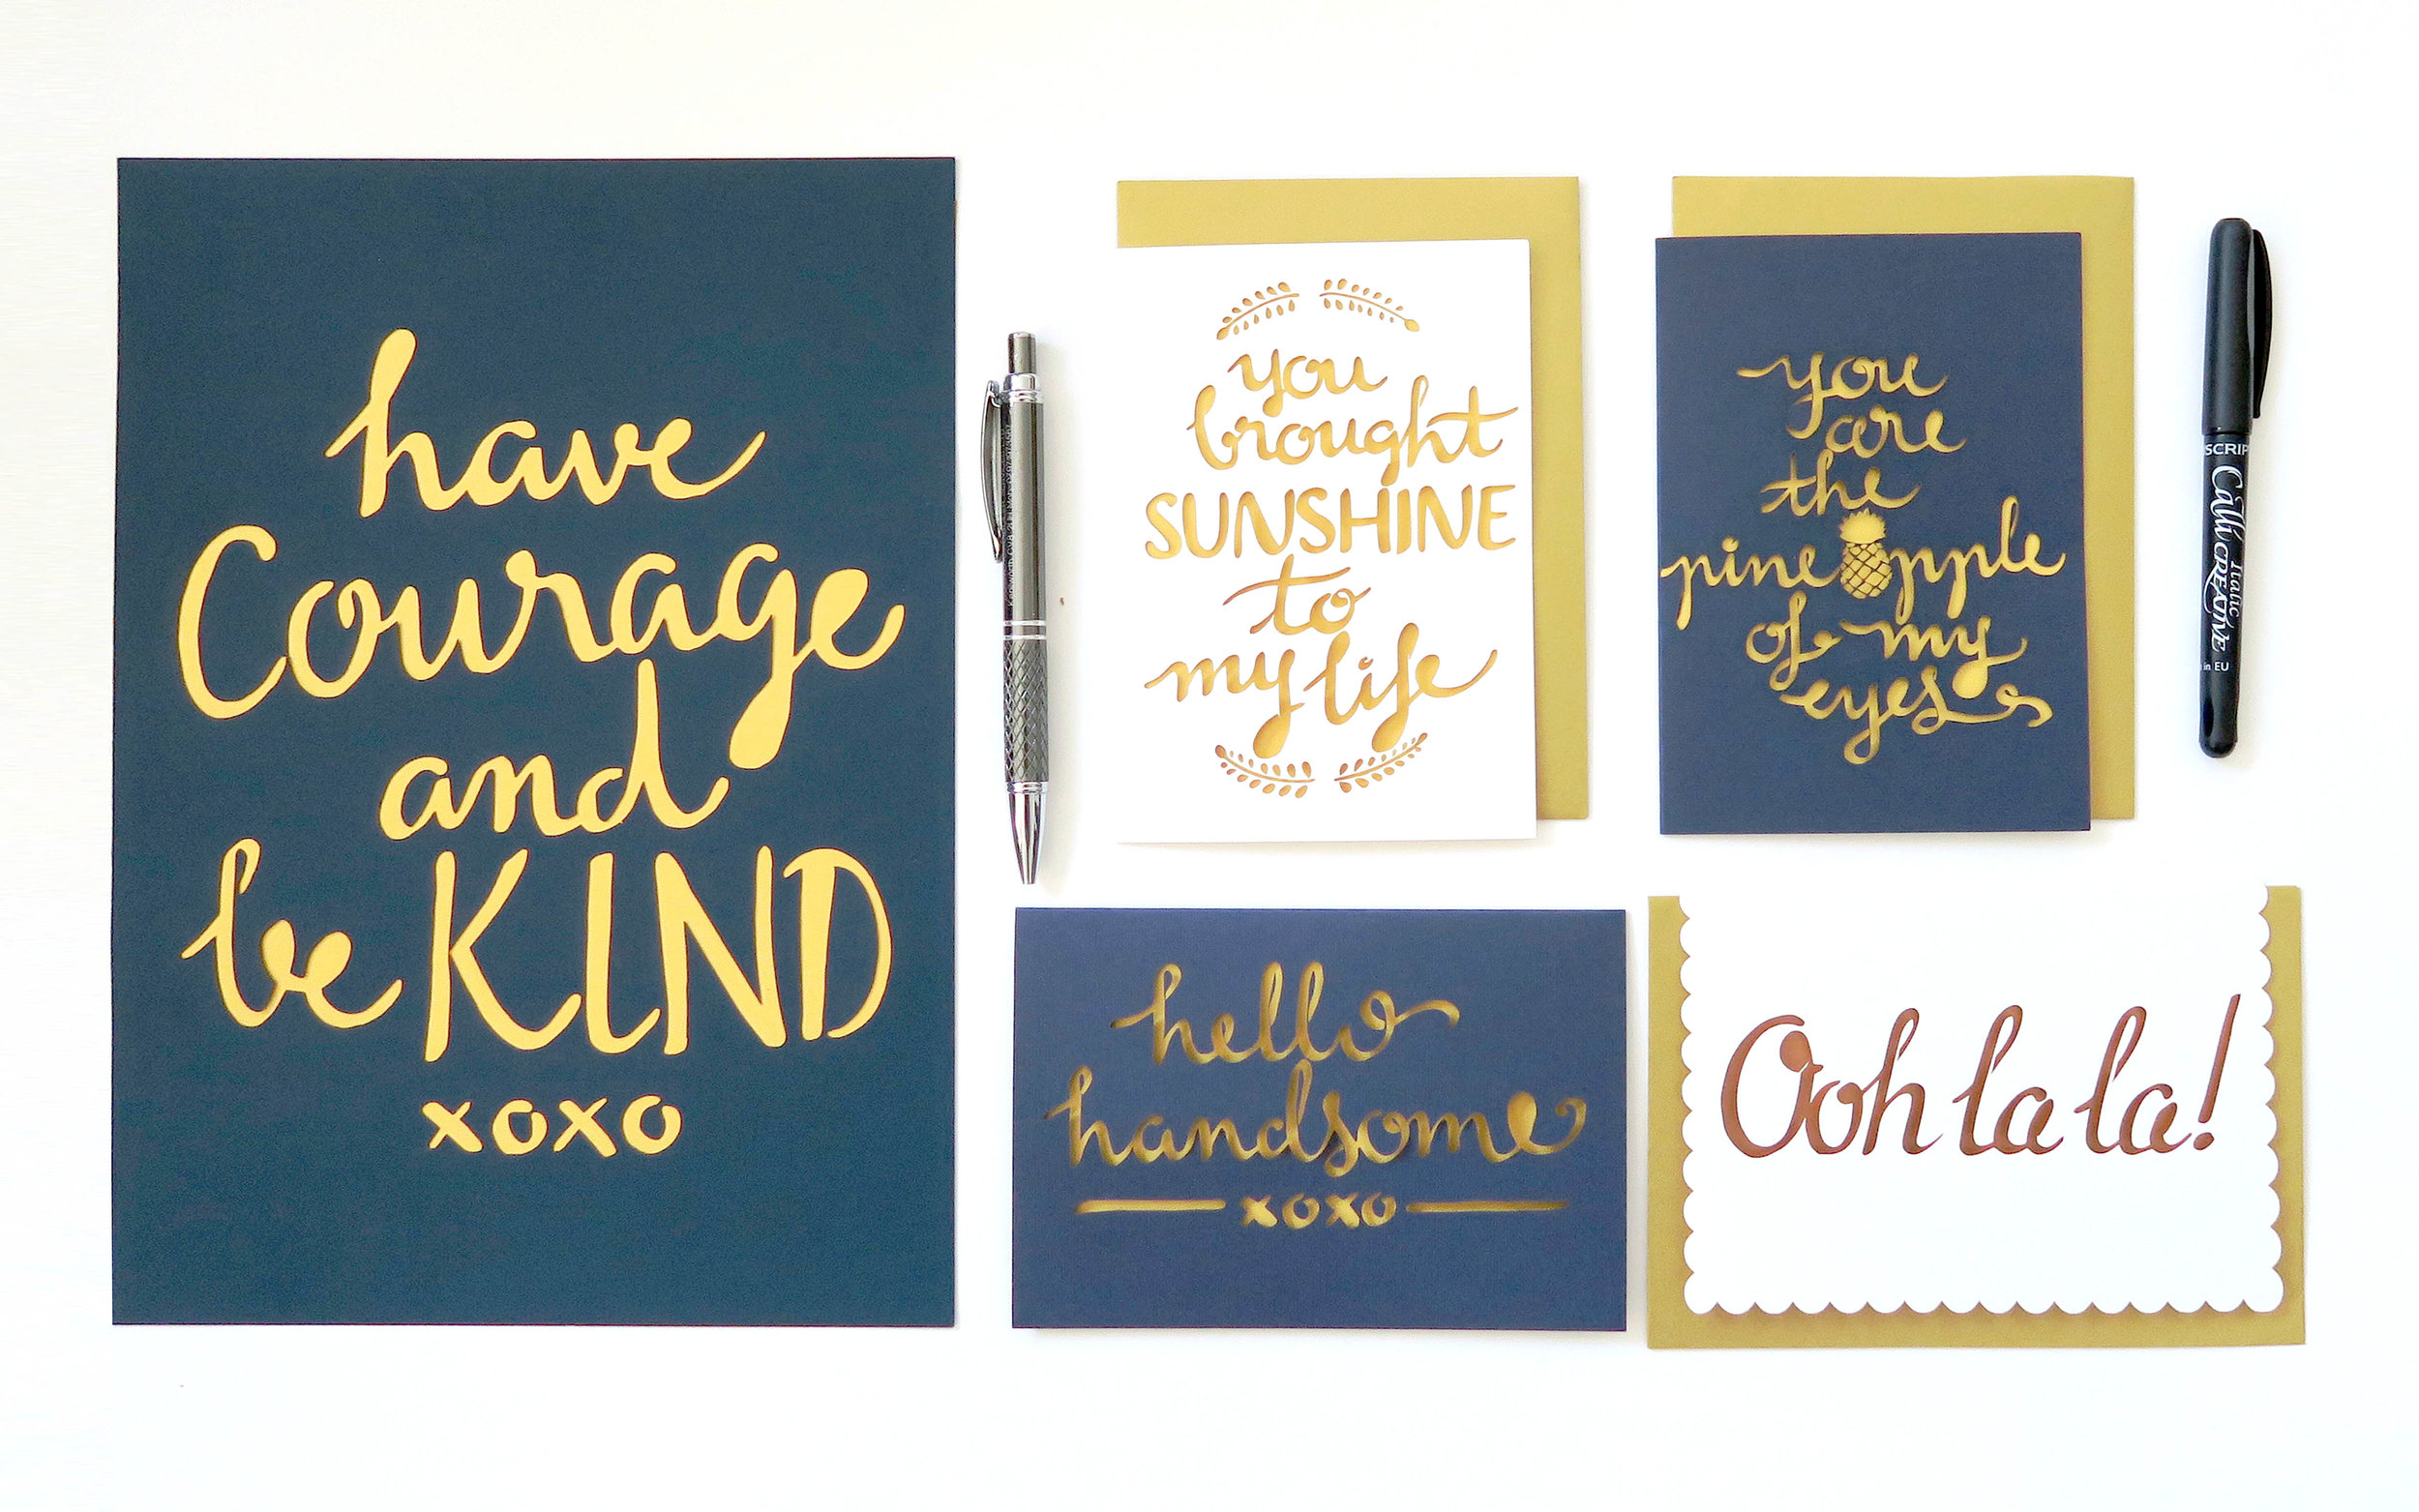 chau art papercut stationery